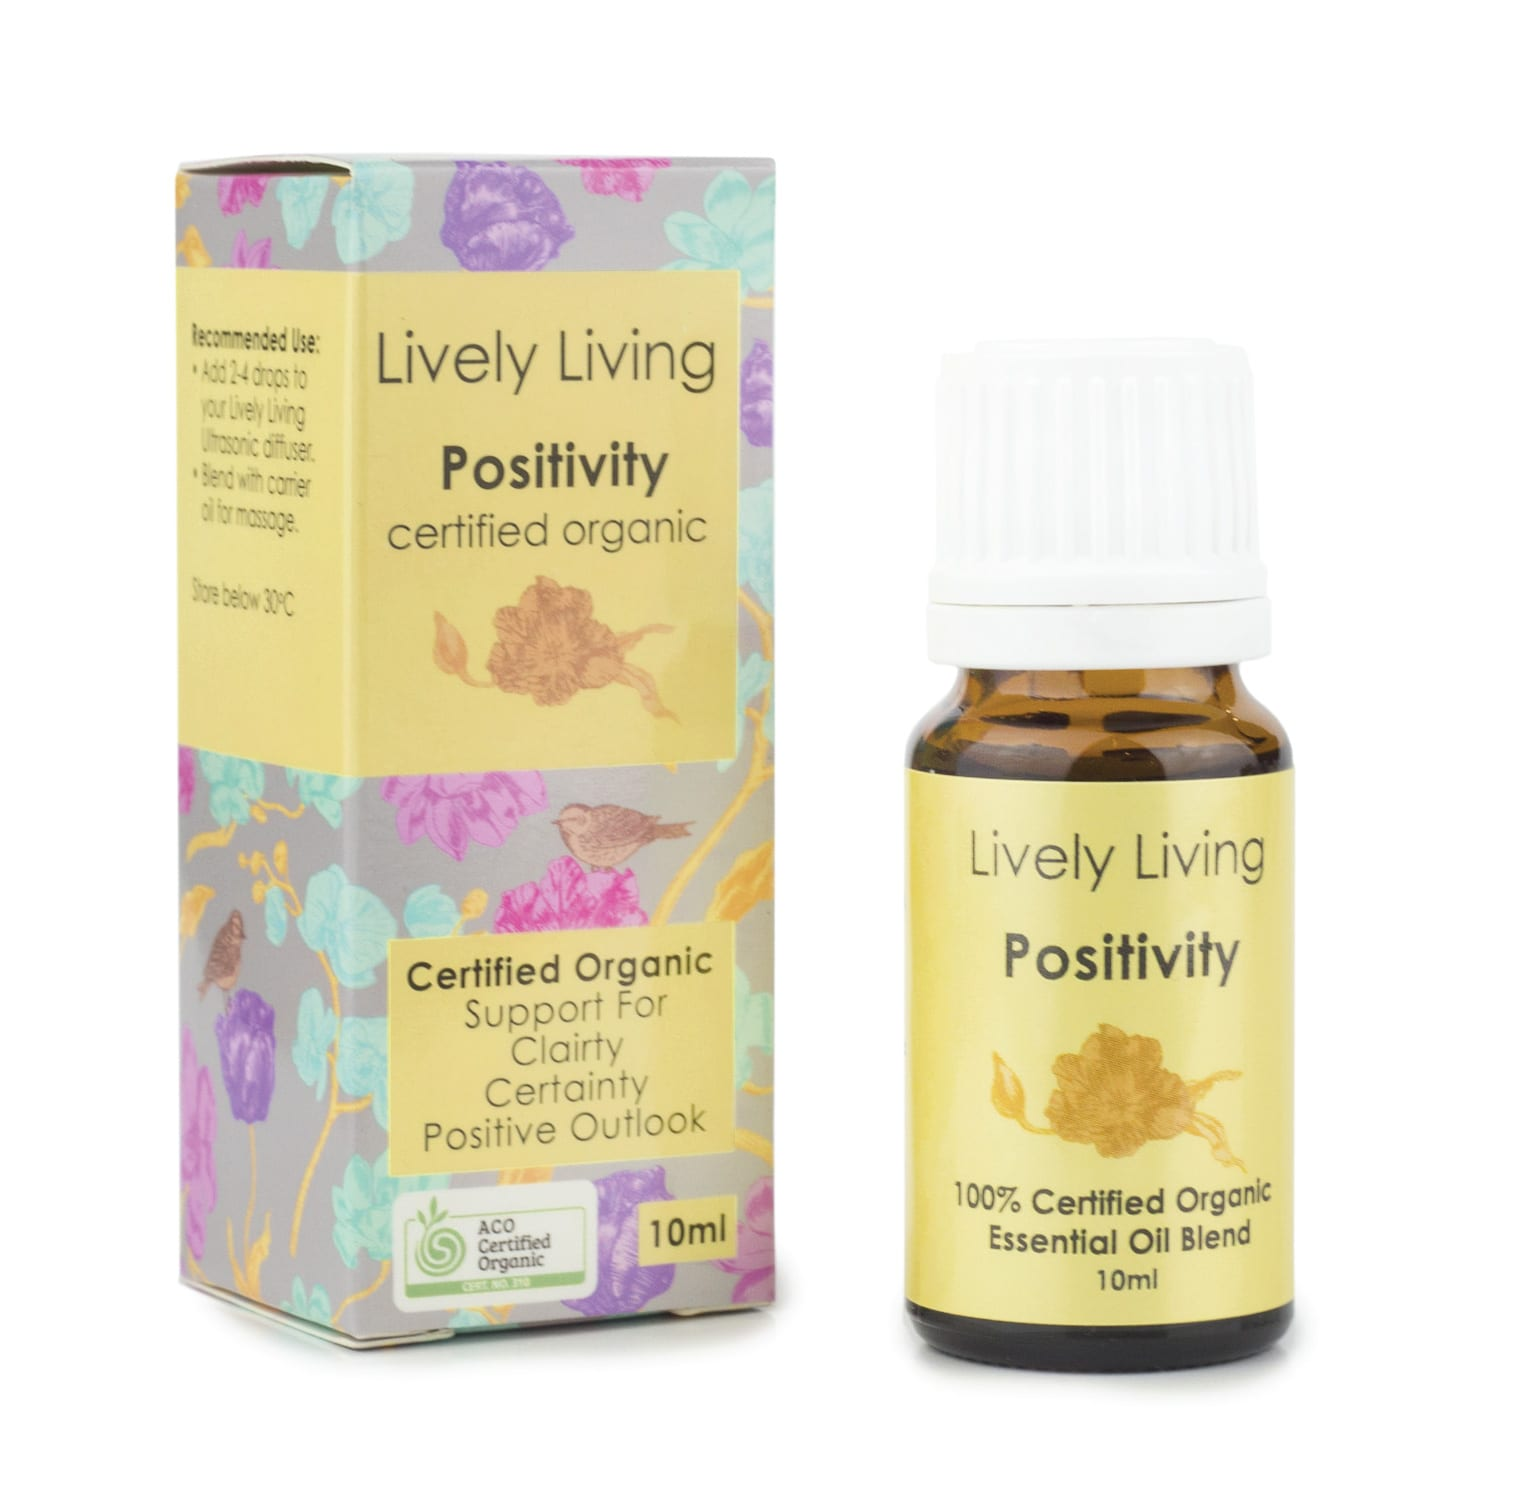 Lively Living Positivity